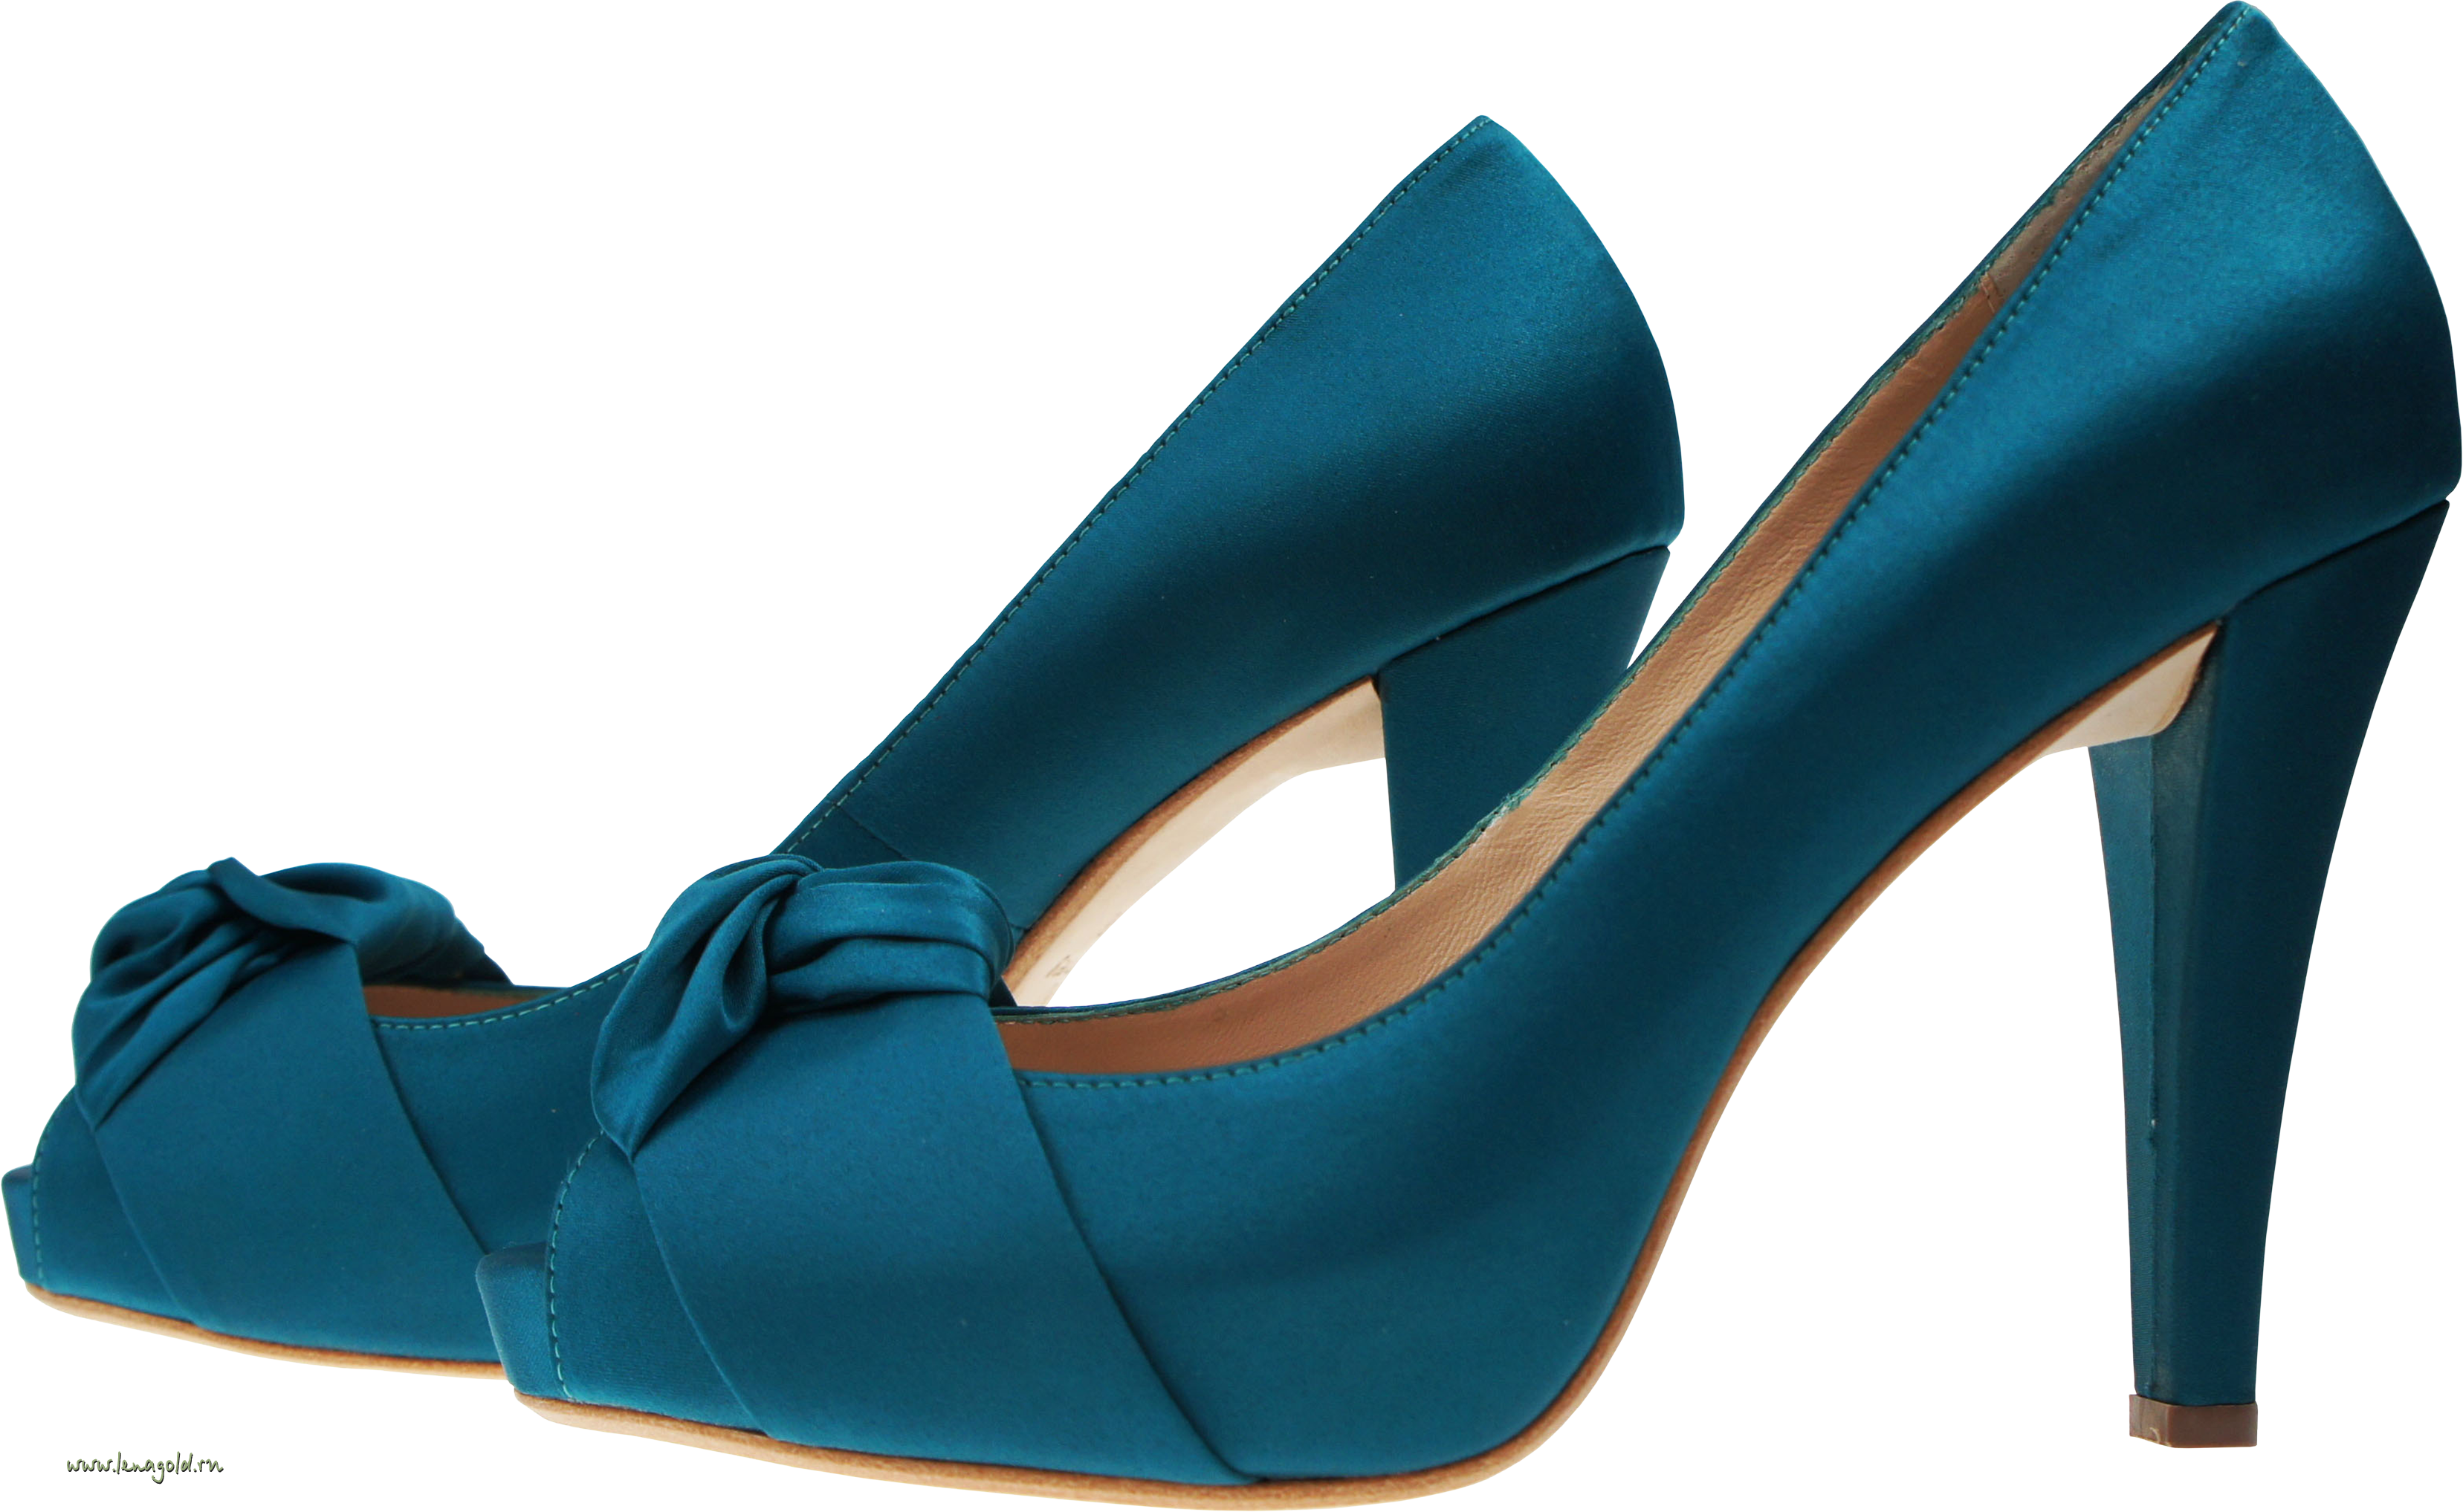 shoes for women blue women shoes png image IMHCWSQ